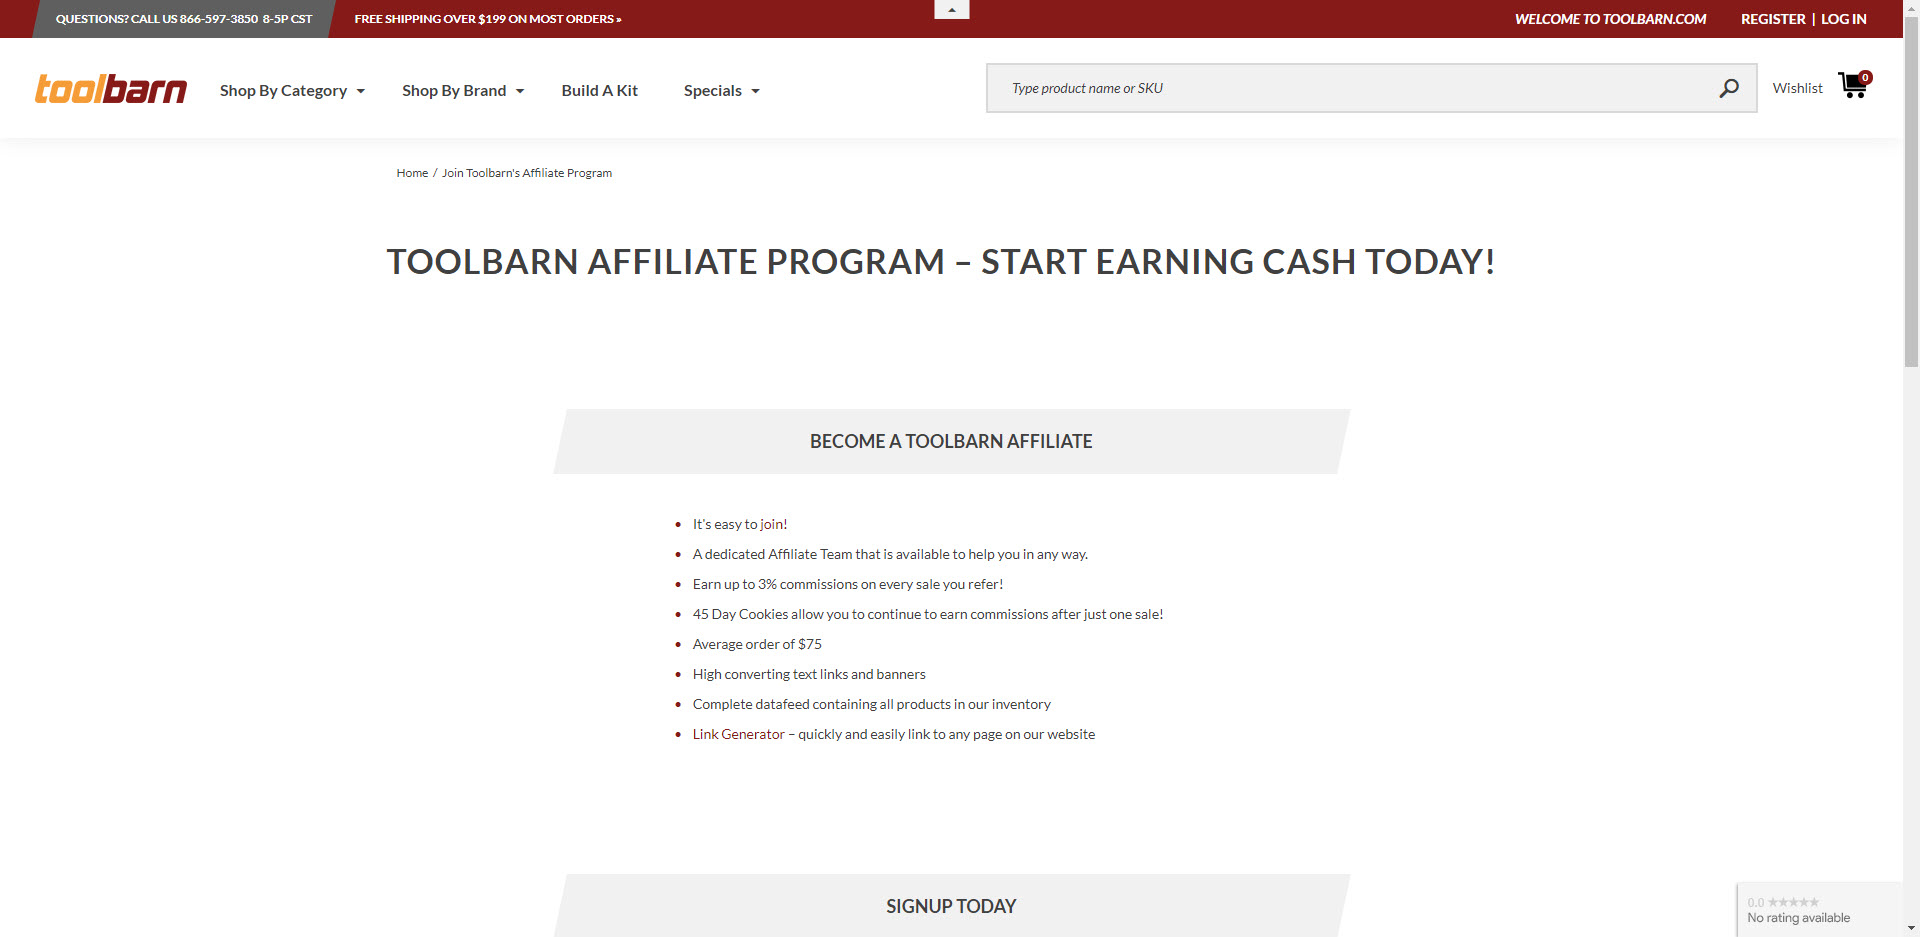 Power tools affiliate programs - toolbarn affiliate